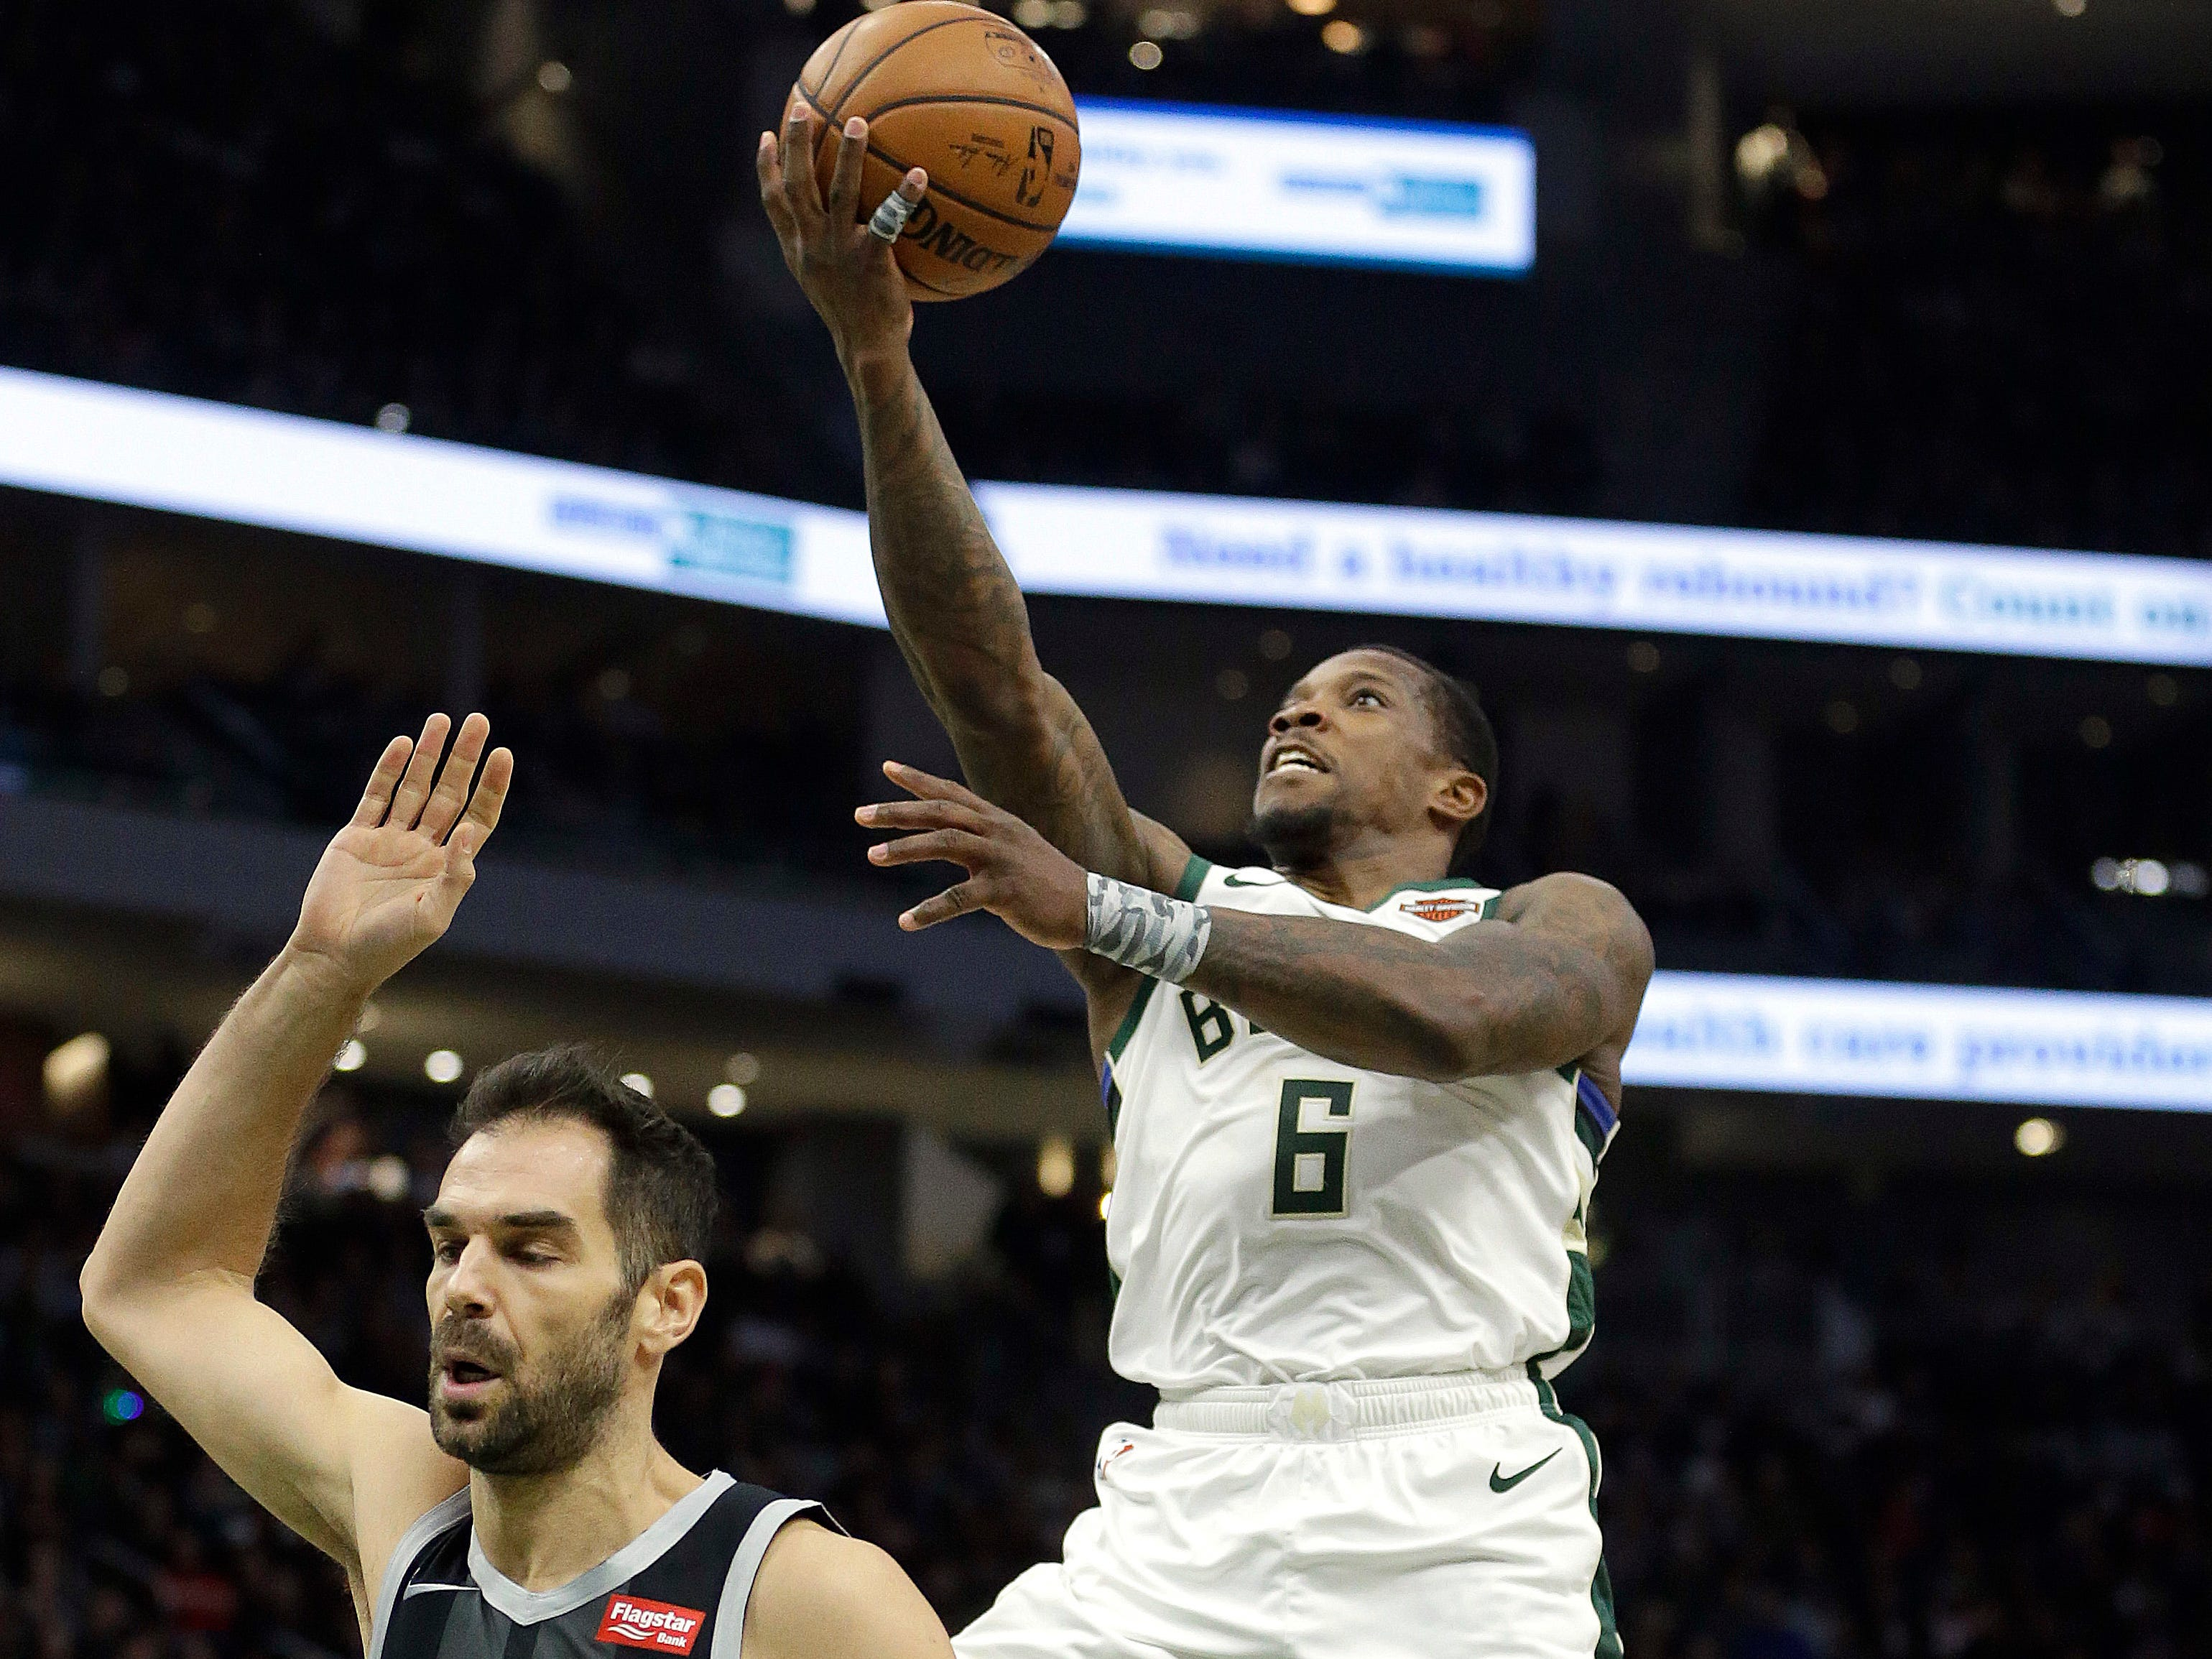 Milwaukee's Eric Bledsoe goes up for a shot in front of Detroit's Jose Calderon during the second half.